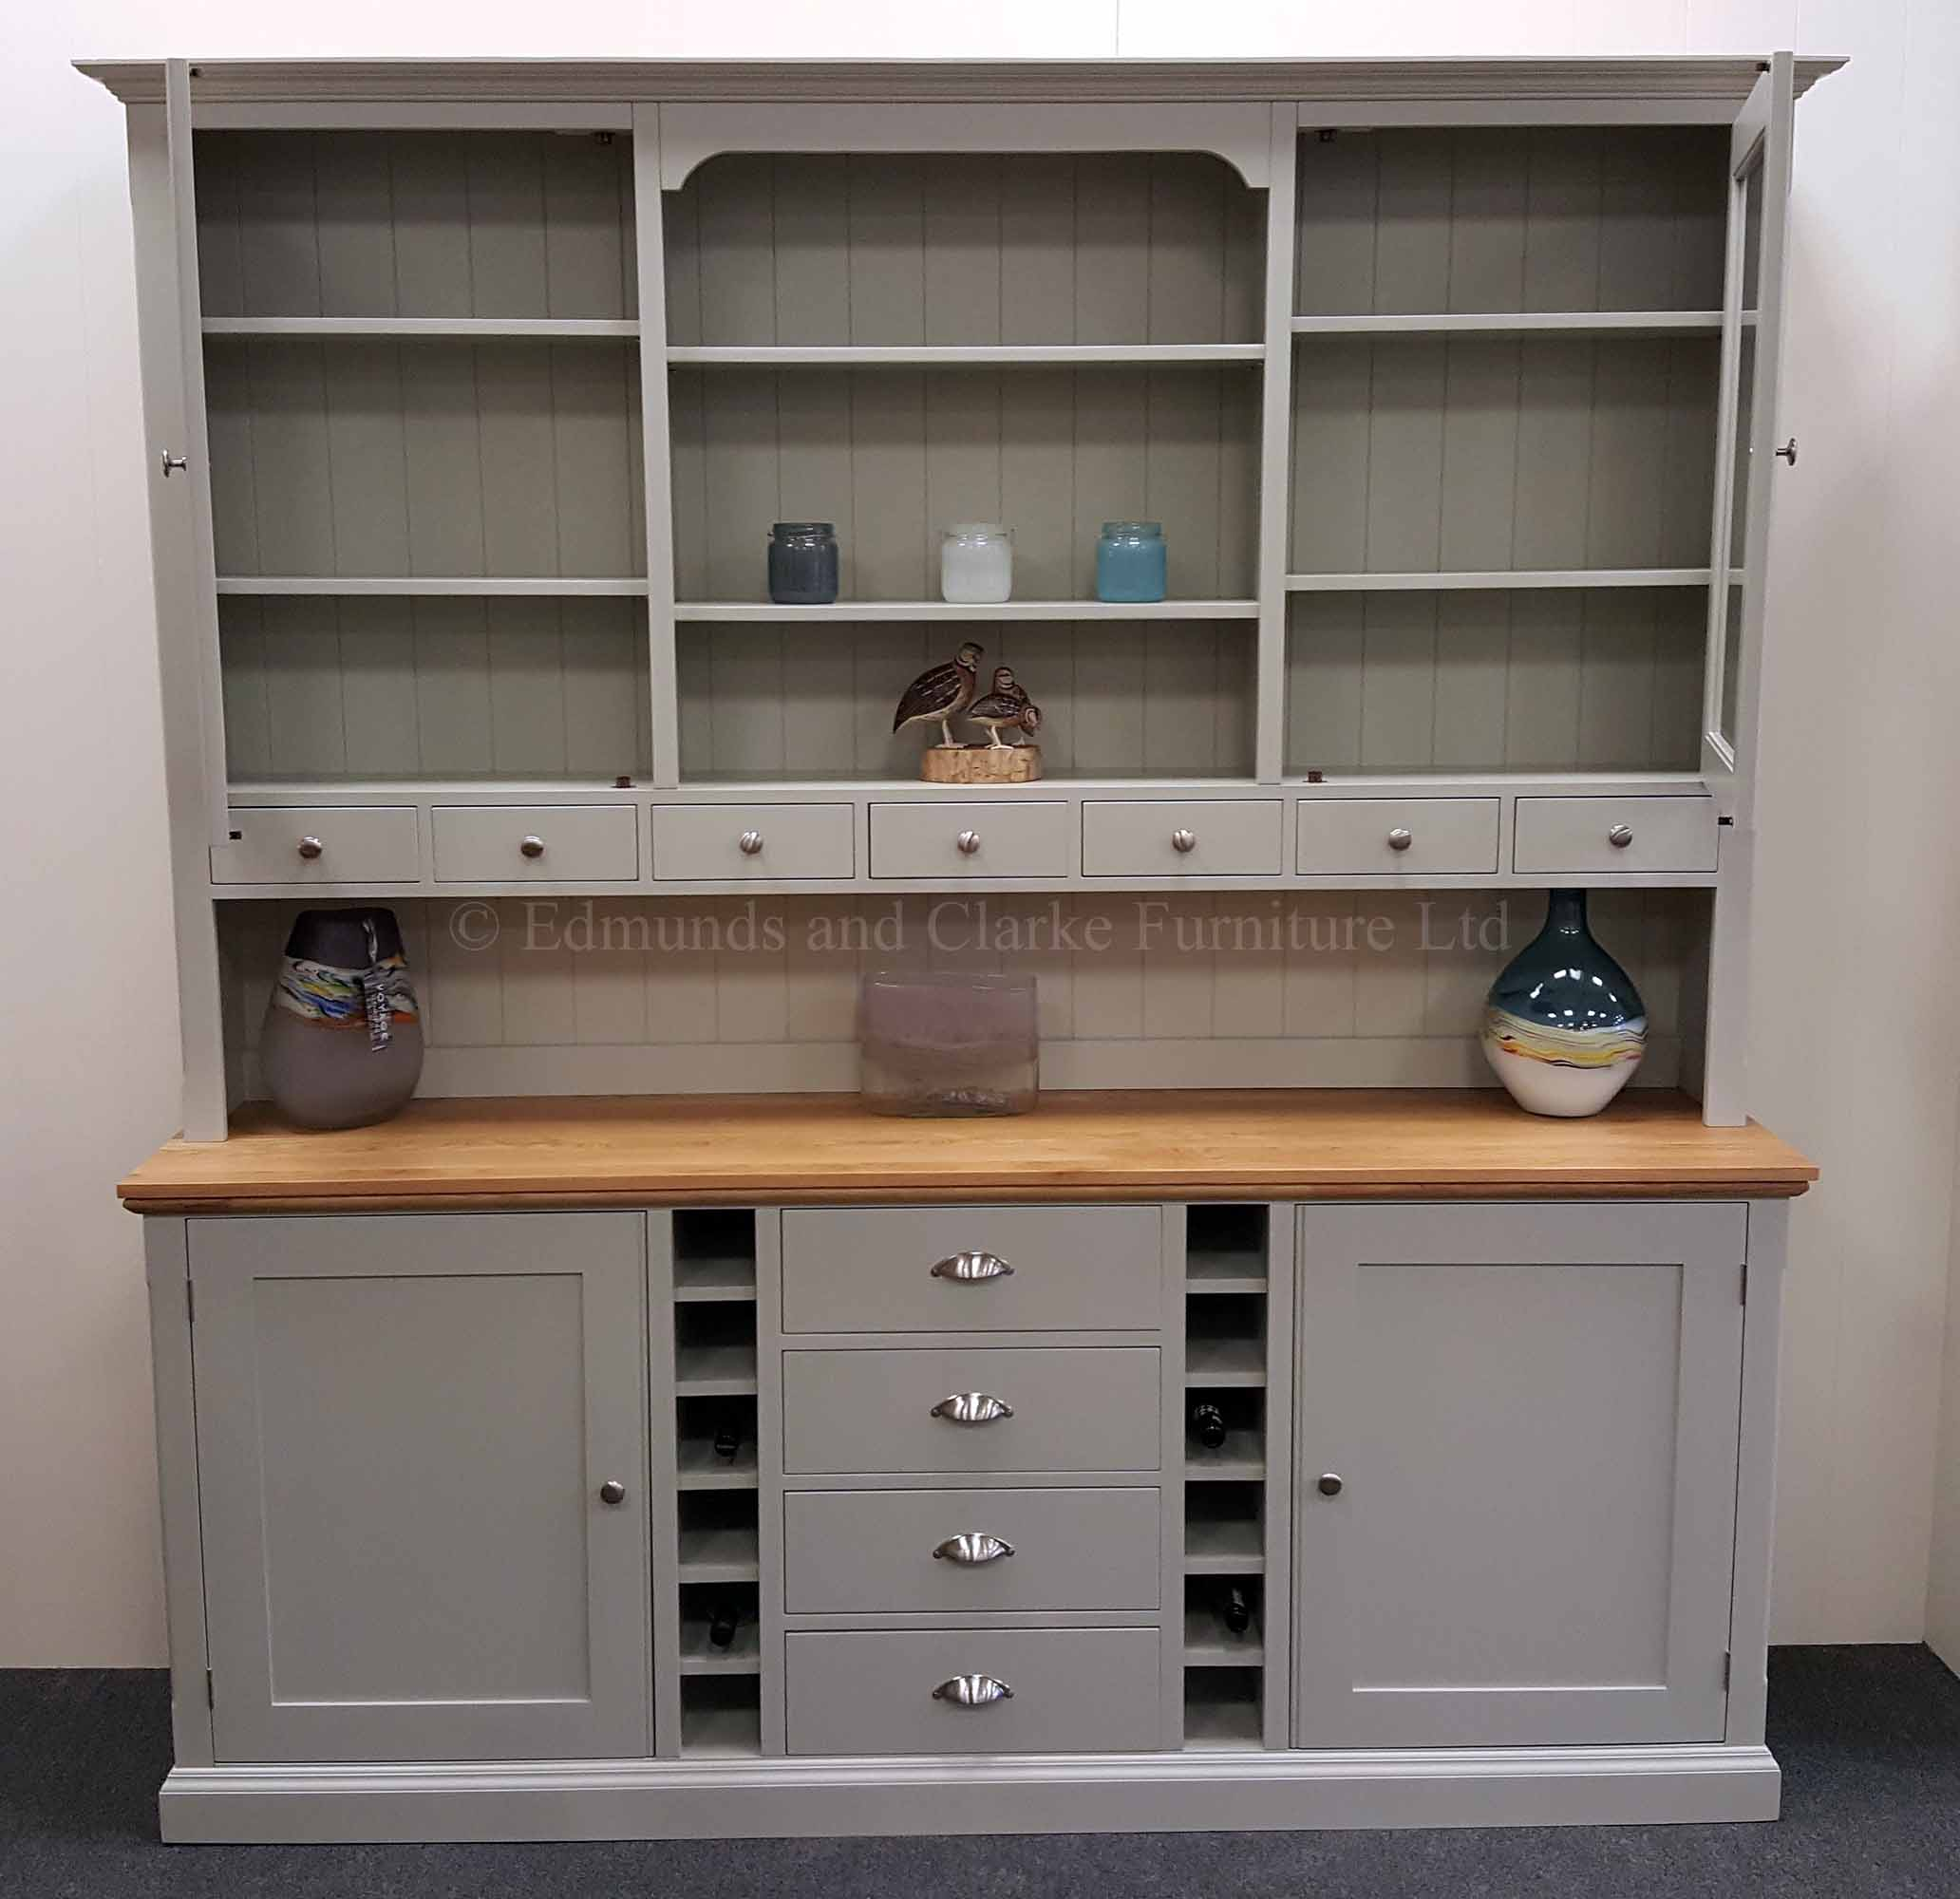 painted tall wide kitchen dresser, two large glazed doors with open central section spice drawers below, wine racks in sideboard